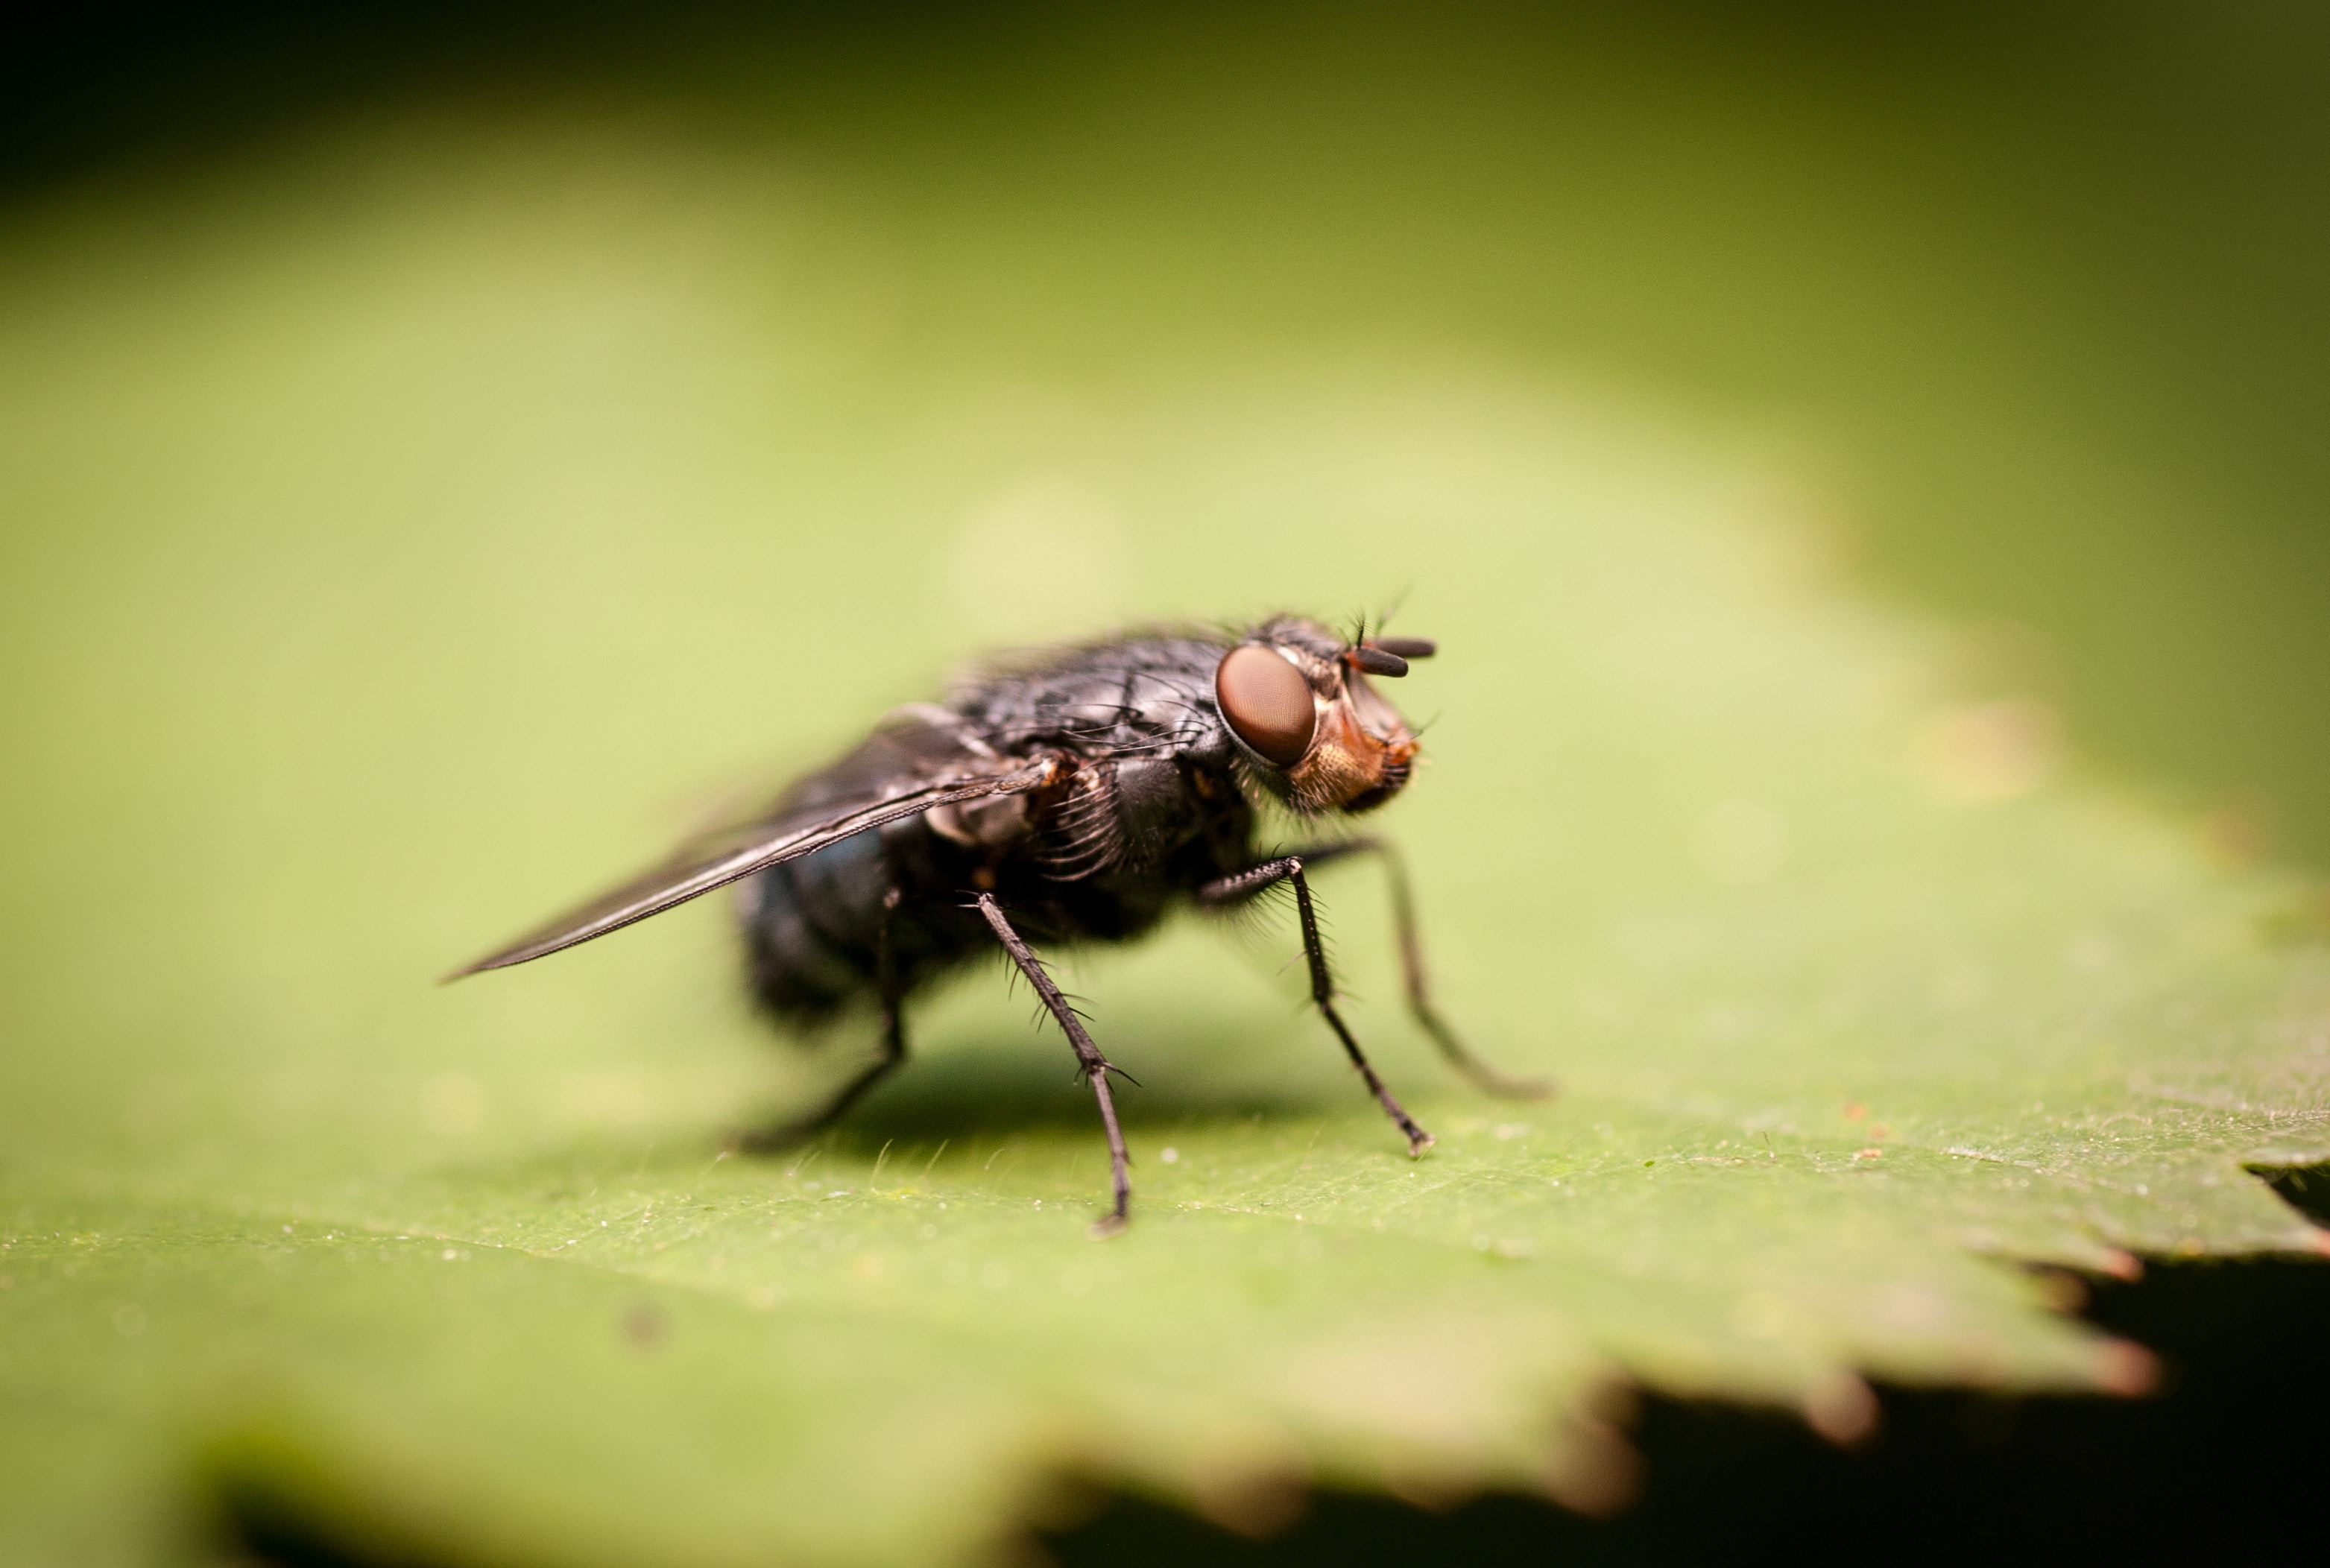 Horse fly in a leaf